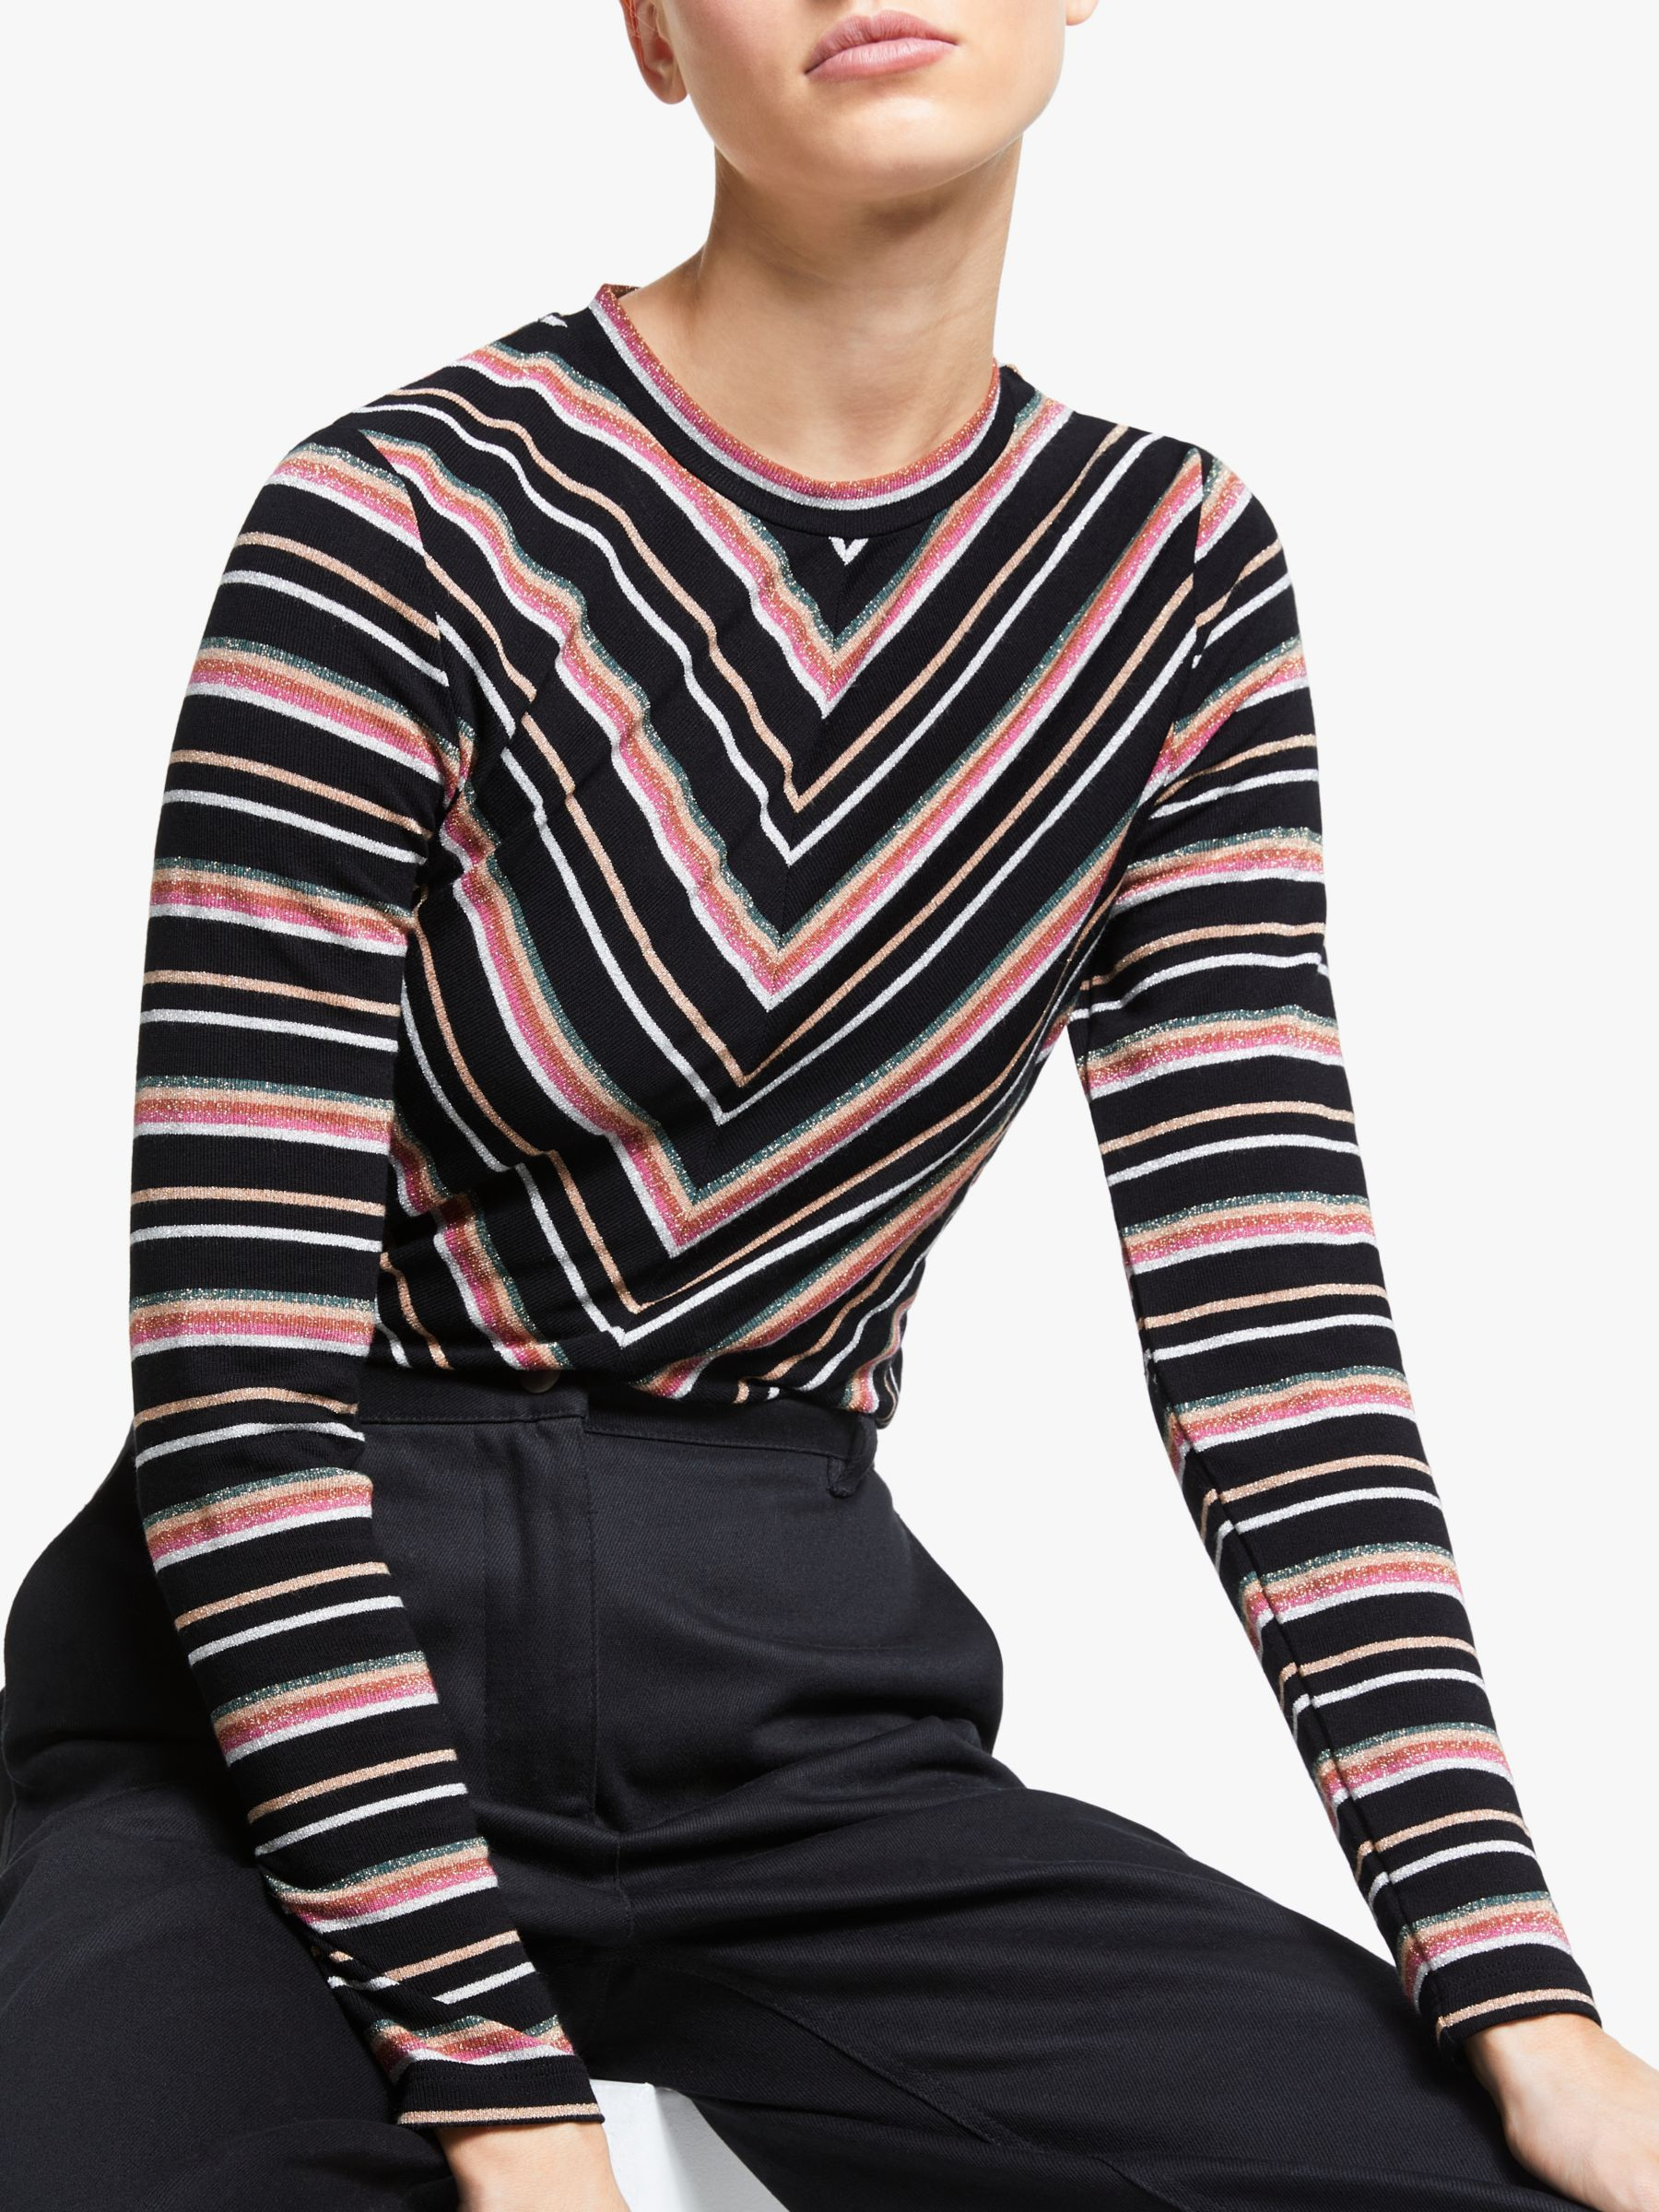 Numph Numph Maximila Long Sleeve Top, Caviar